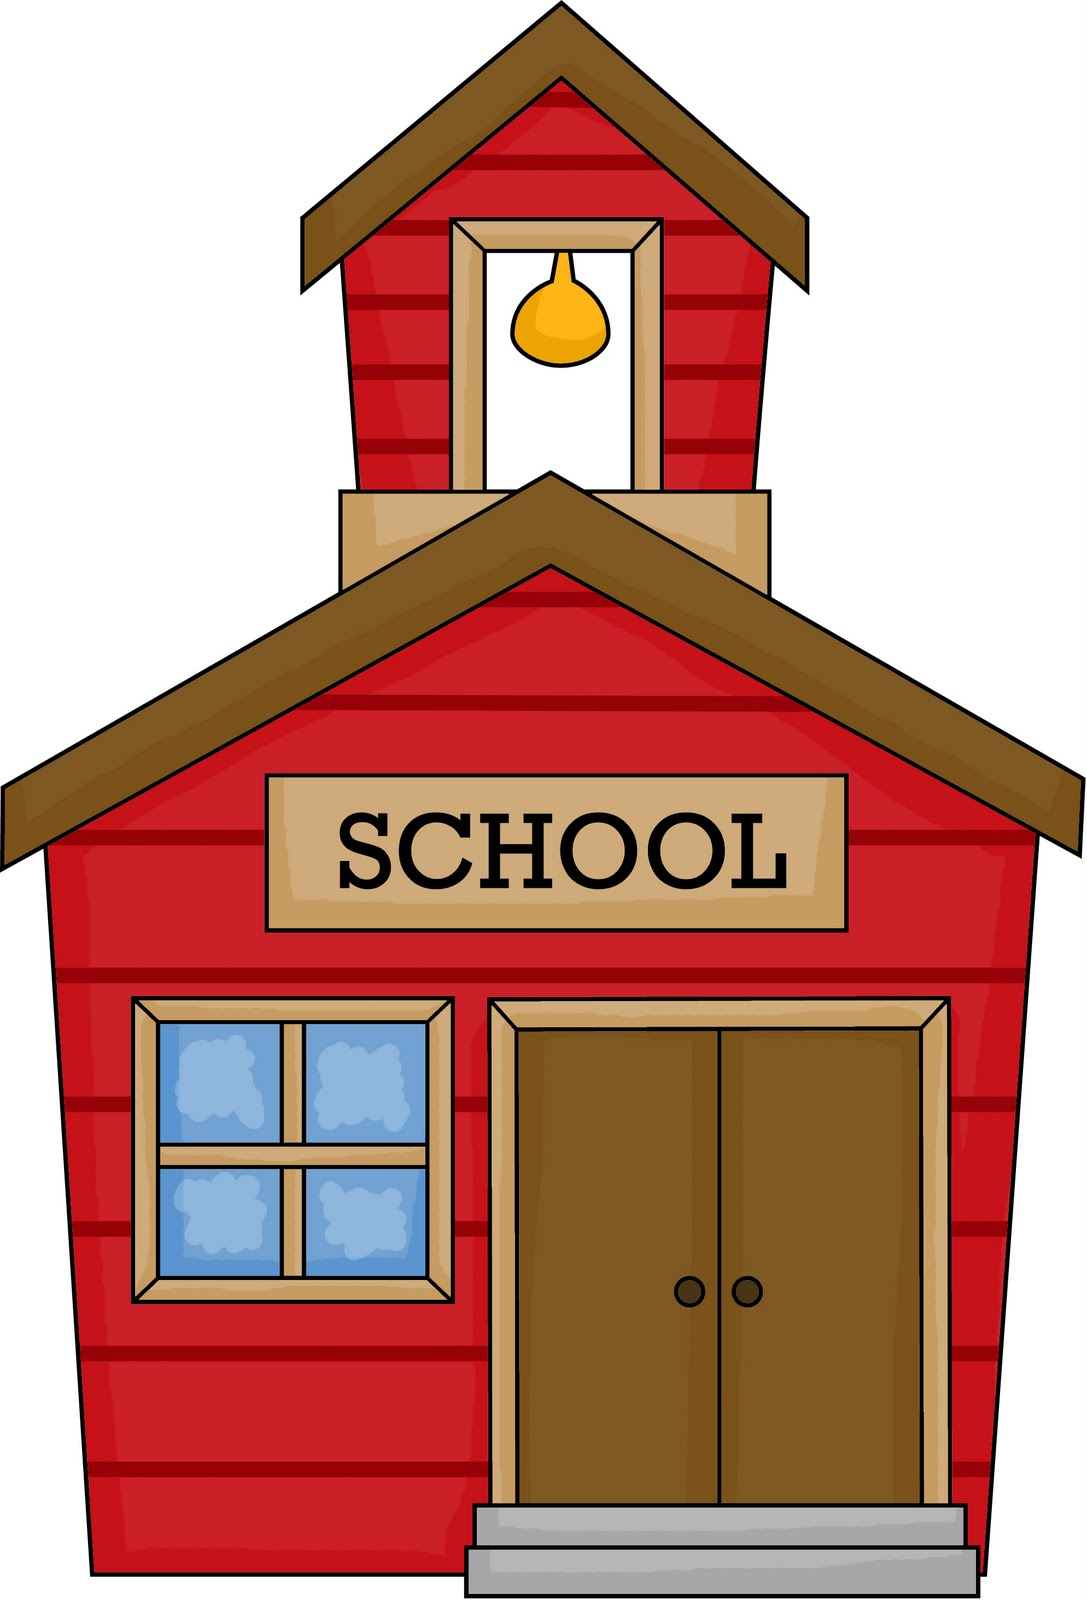 School House Images-school house images-7